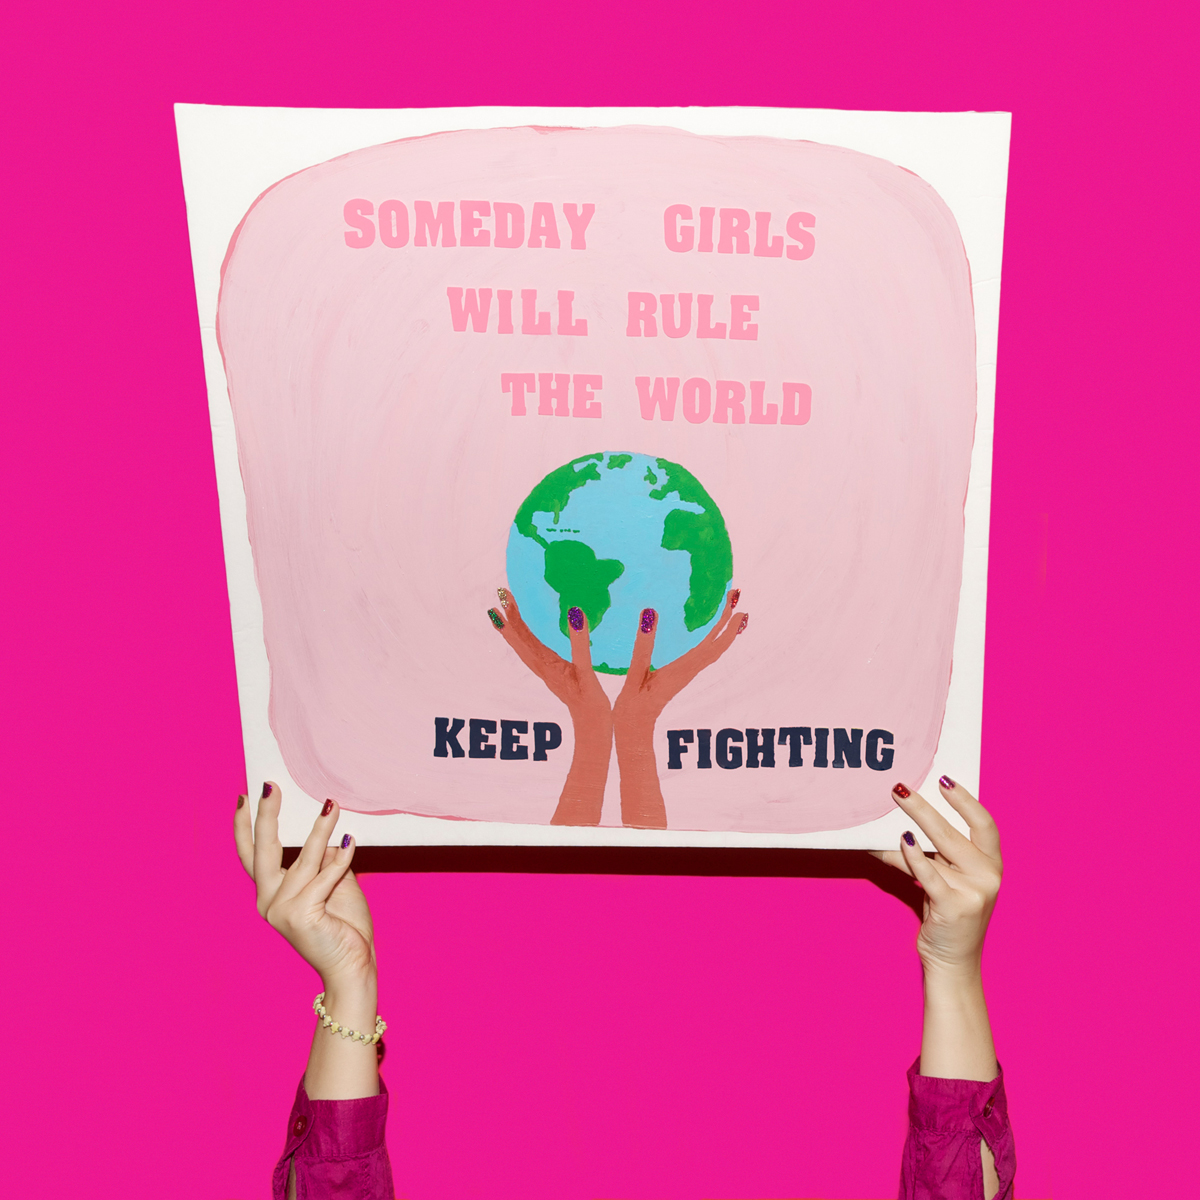 45 Protest Signs_Brandon and Olivia Locher_42_For Refinery 29 America First